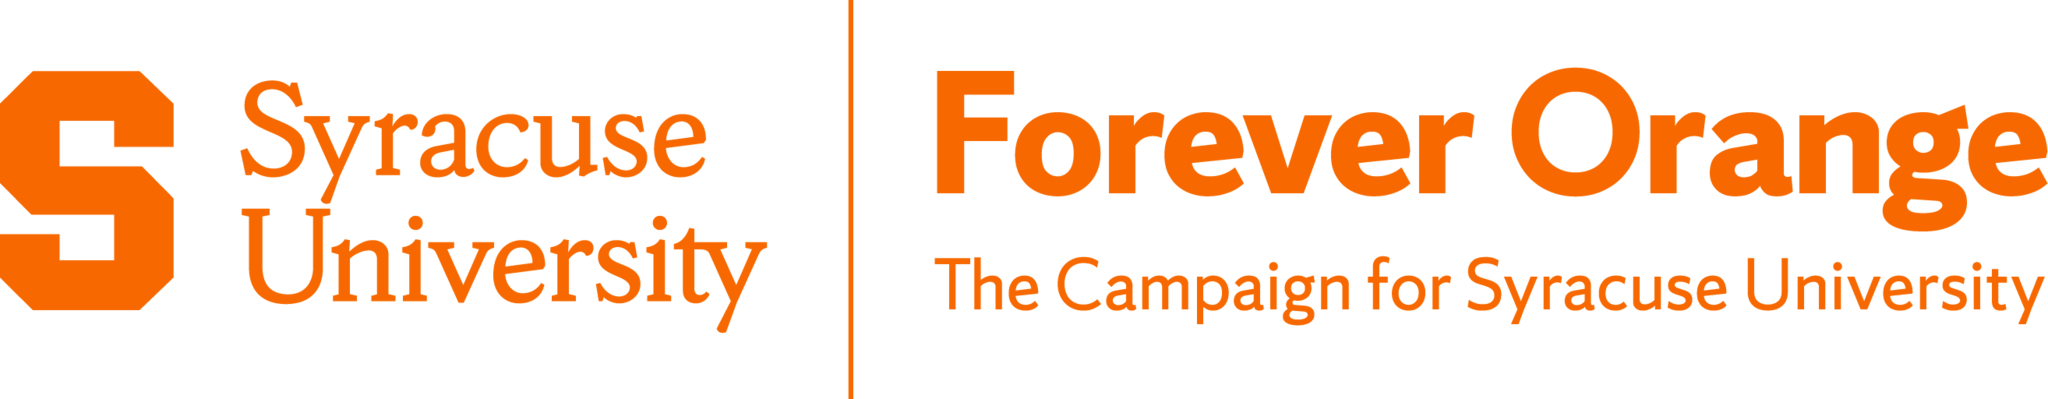 Syracuse University | Forever Orange The Campaign for Syracuse University